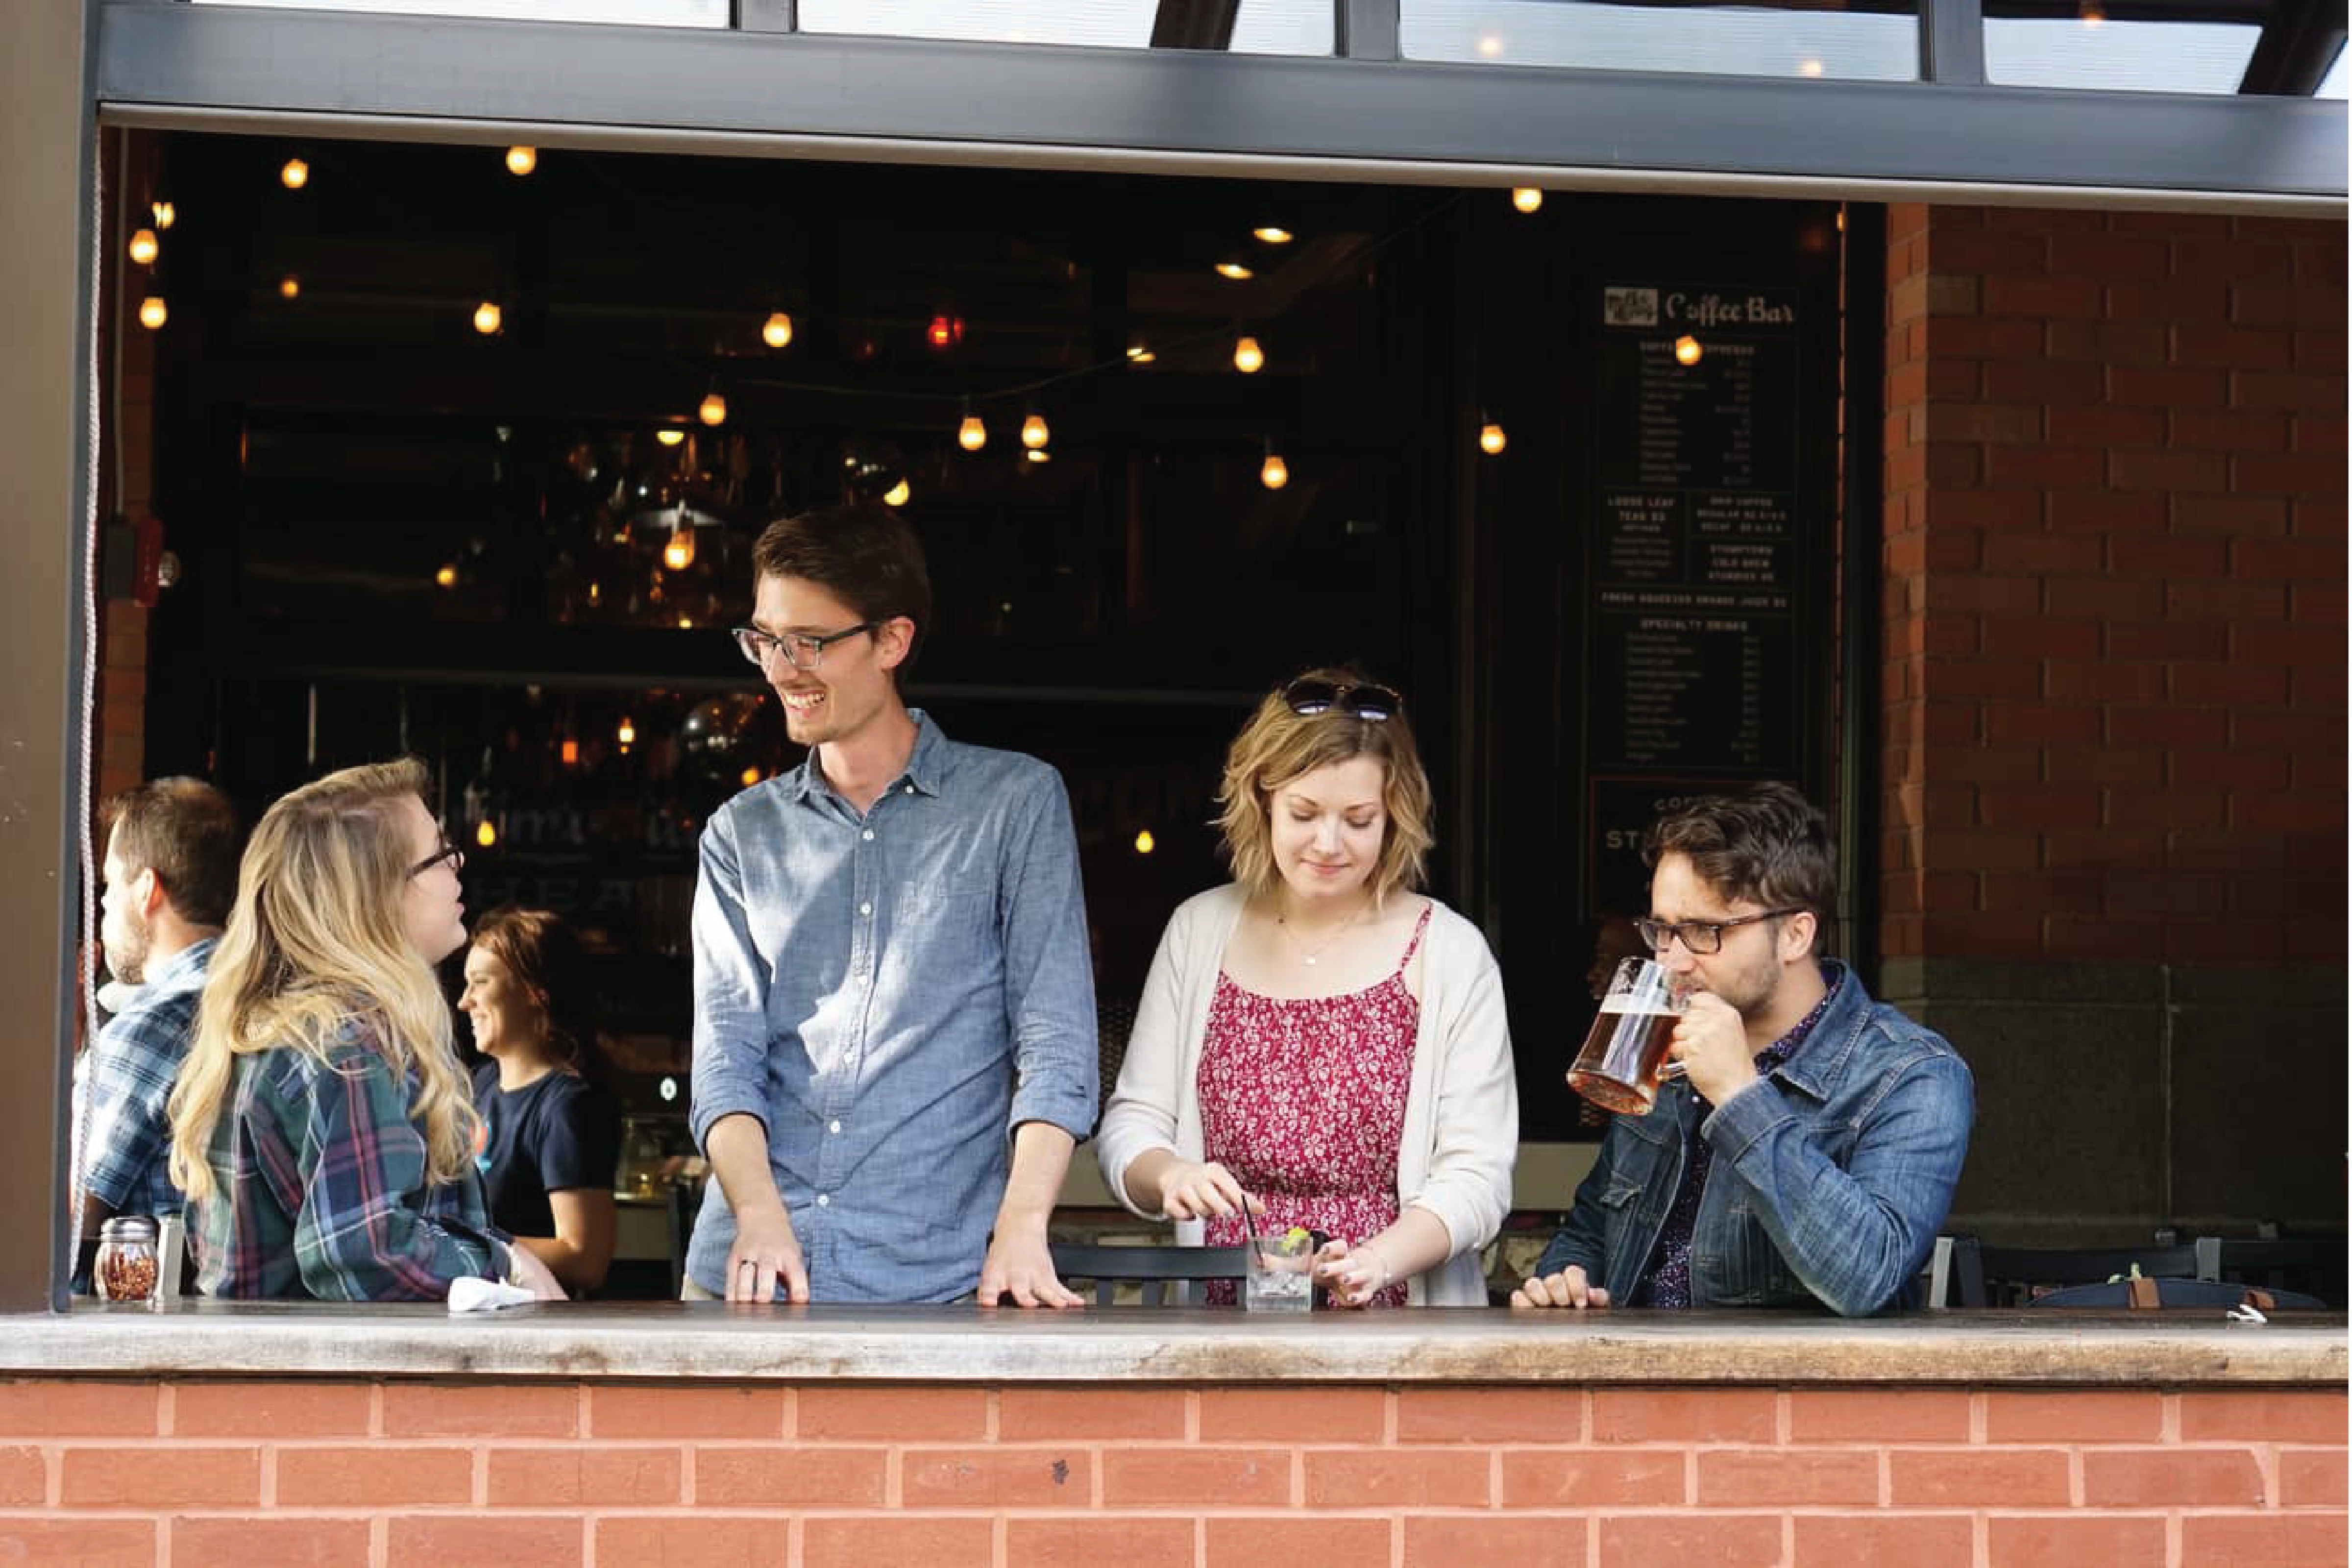 Pictured are four people networking and drinking beer at Oddstory